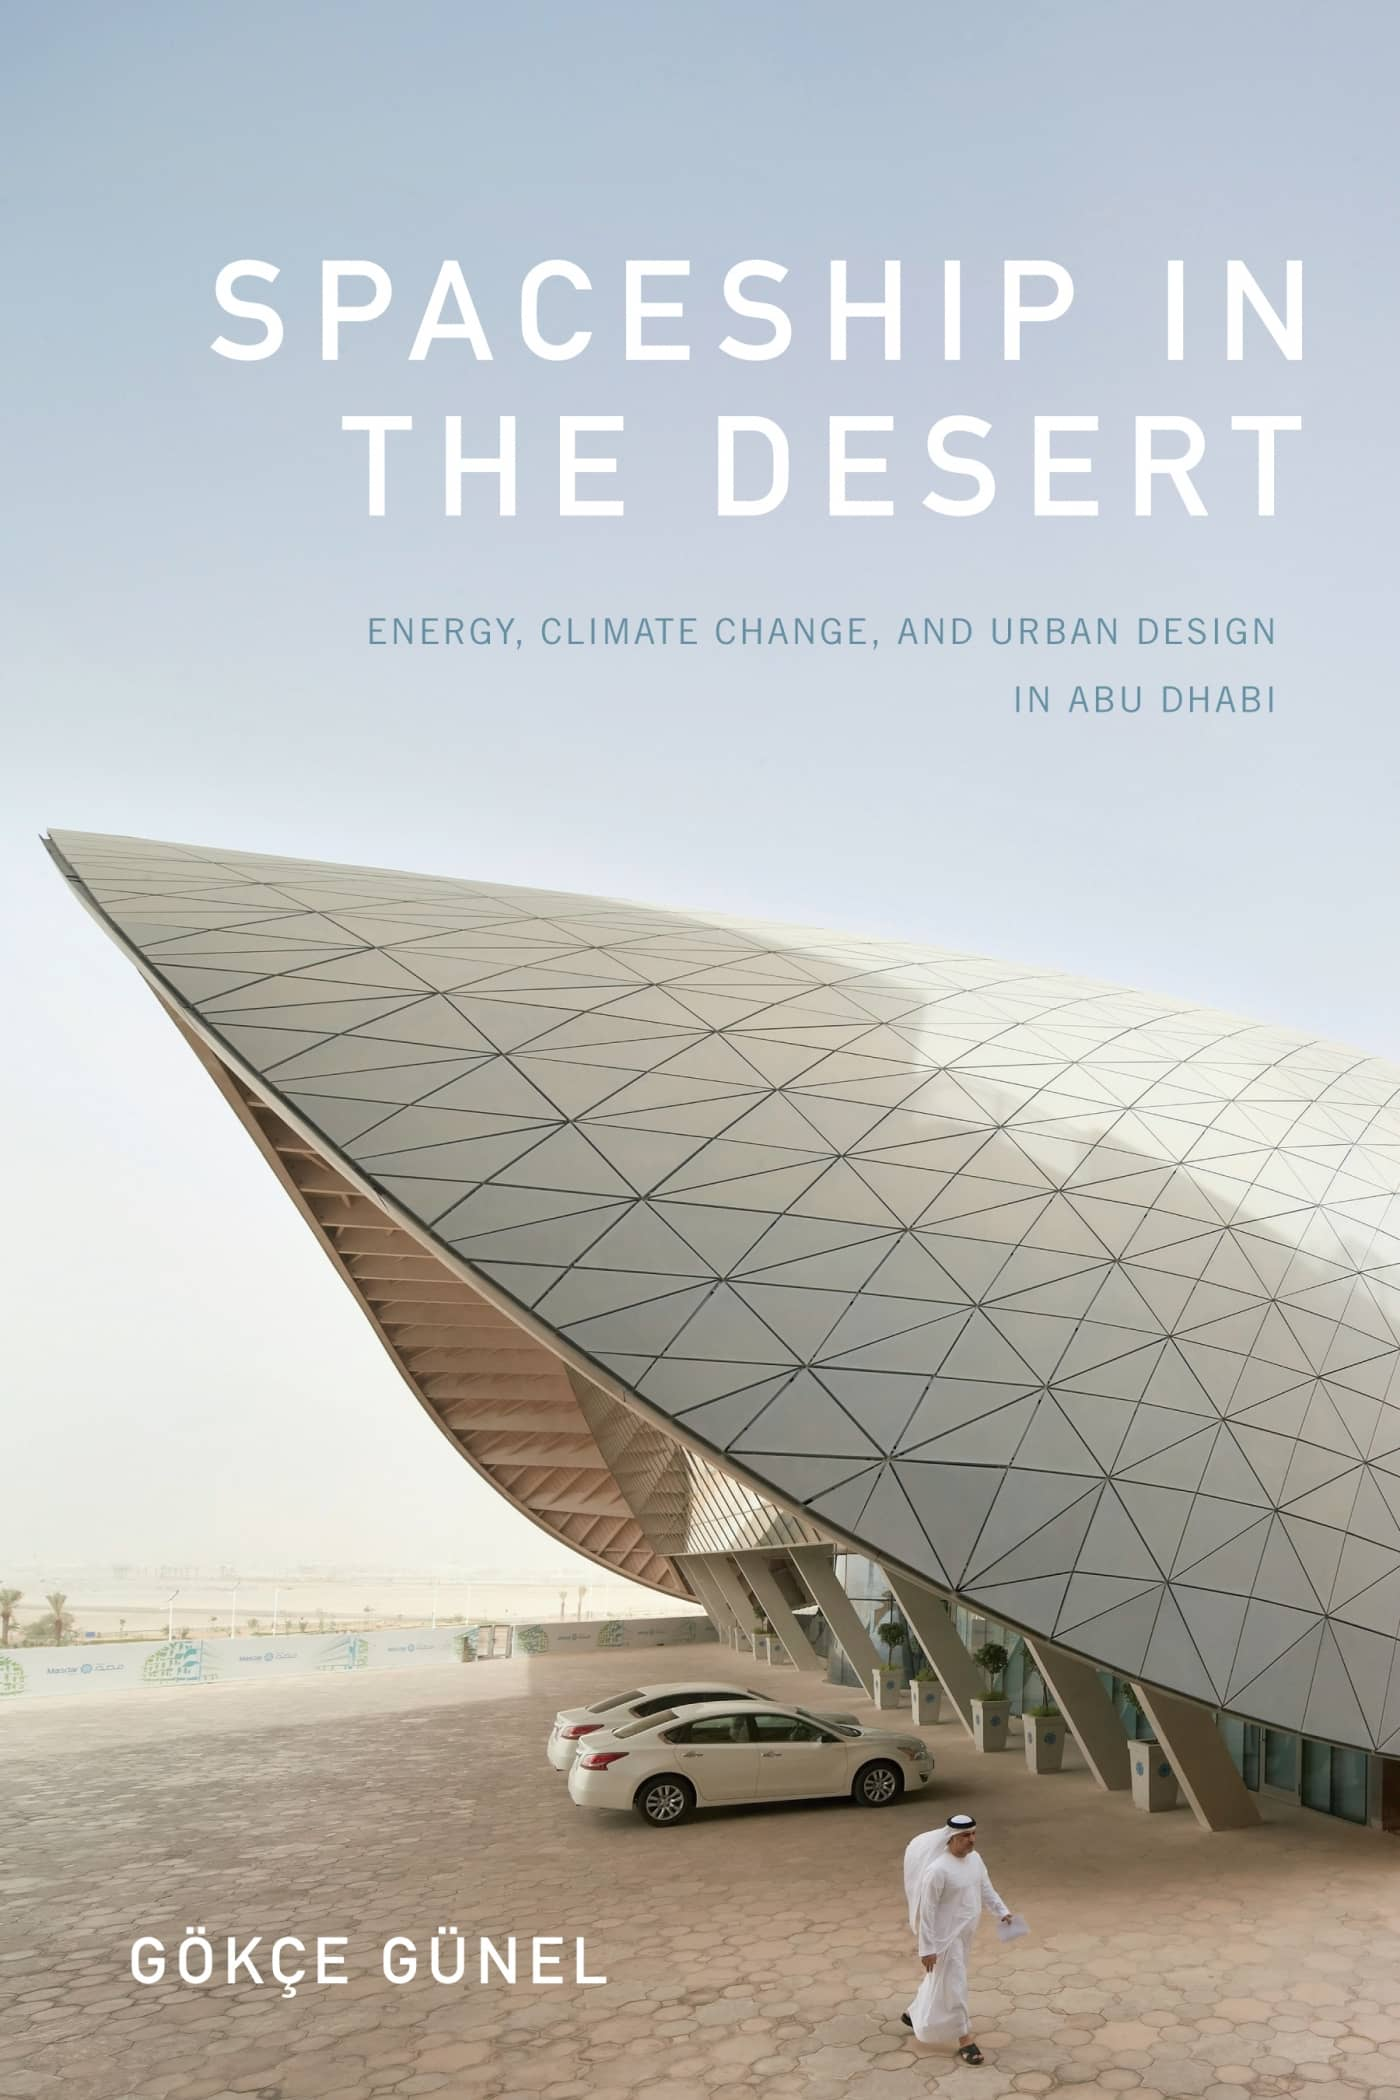 'Spaceship in the Desert: Energy, Climate Change, and Urban Design in Abu Dhabi' book cover